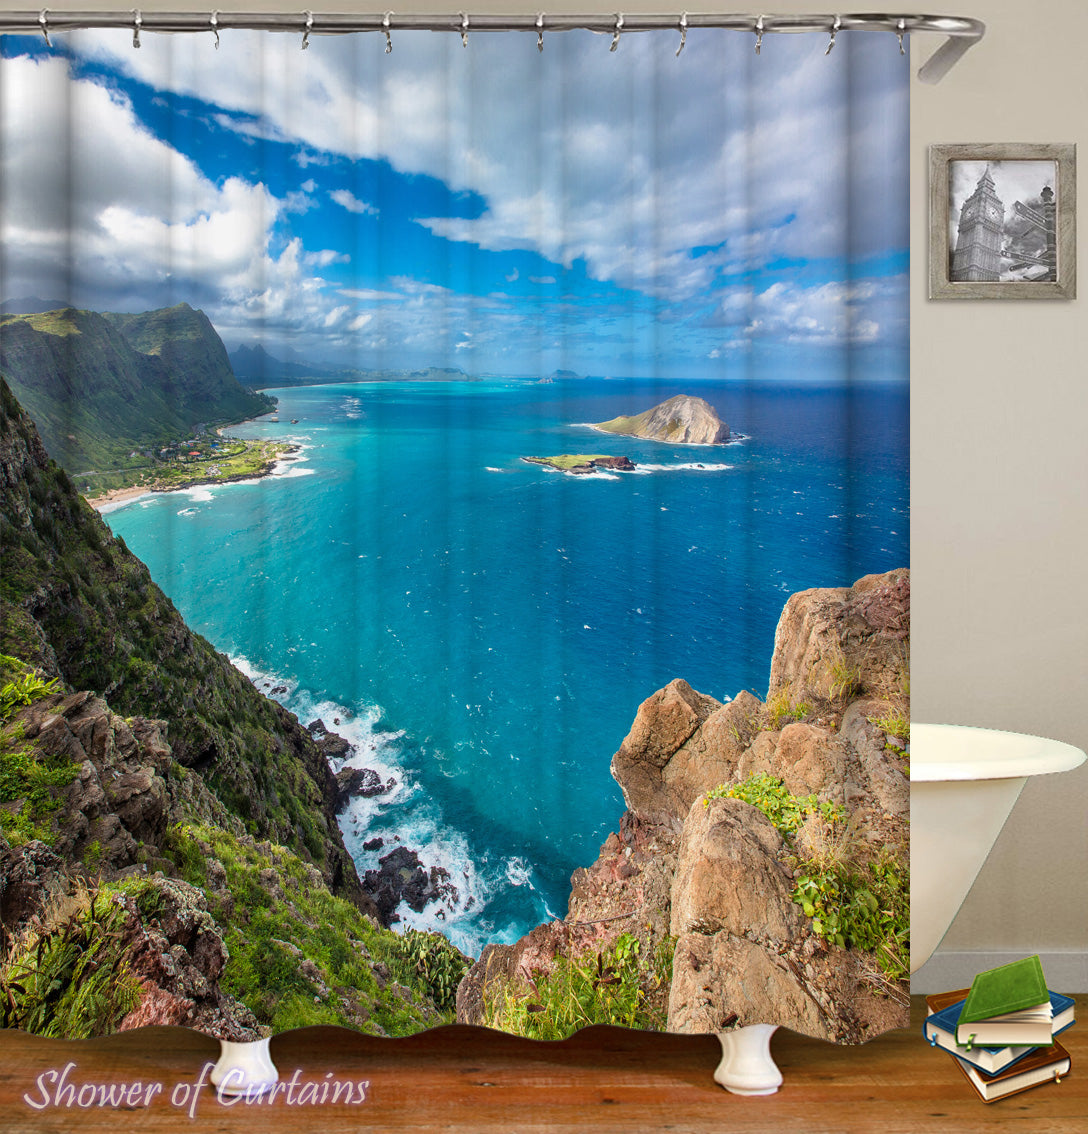 Shower Curtains | Isolated Beach Glance – Shower of Curtains